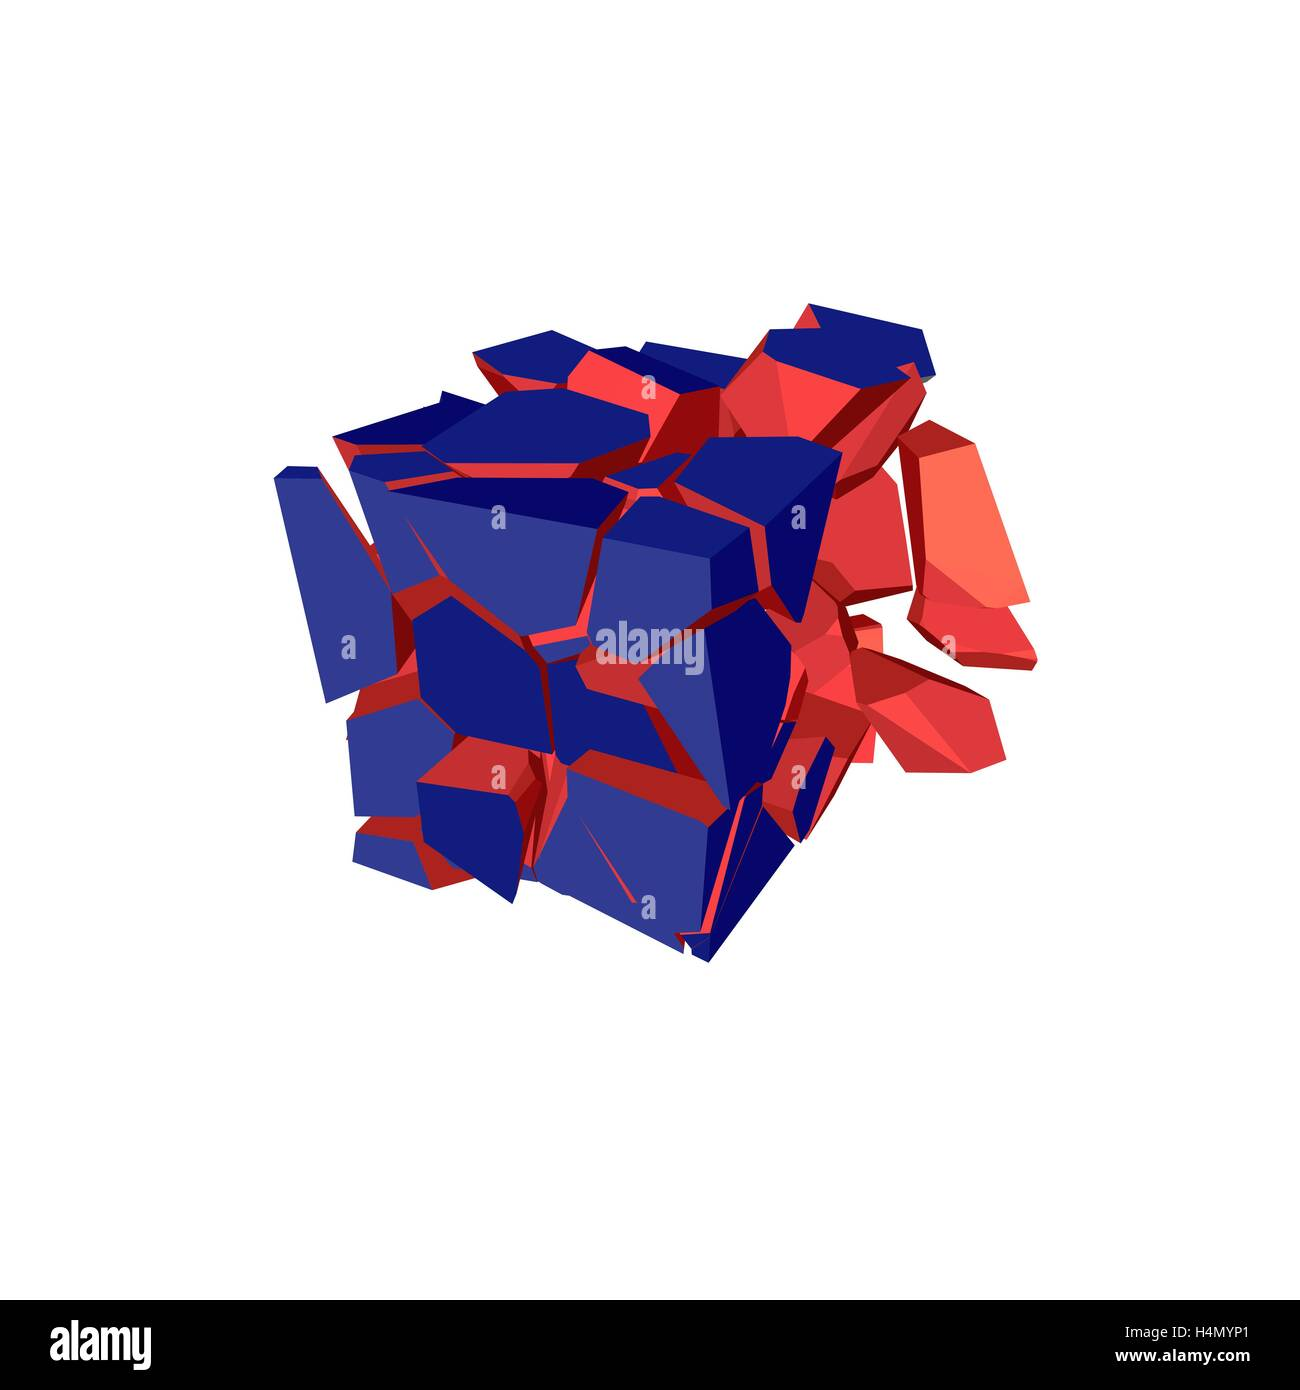 Exploded cube. Isolated on white background. Vector illustration. - Stock Vector